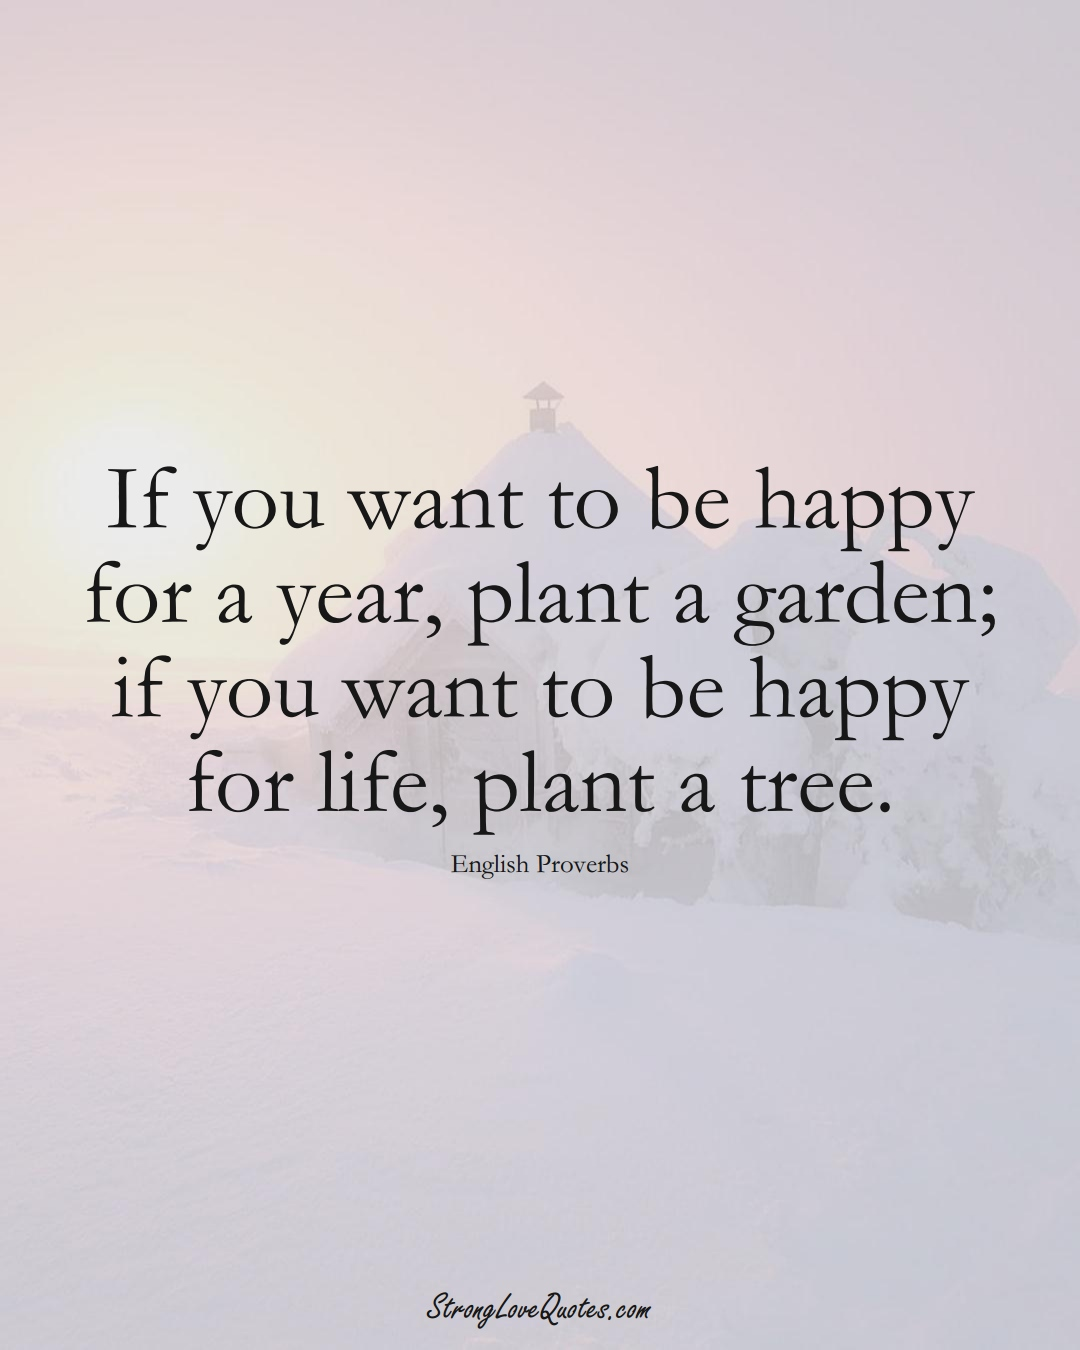 If you want to be happy for a year, plant a garden; if you want to be happy for life, plant a tree. (English Sayings);  #EuropeanSayings